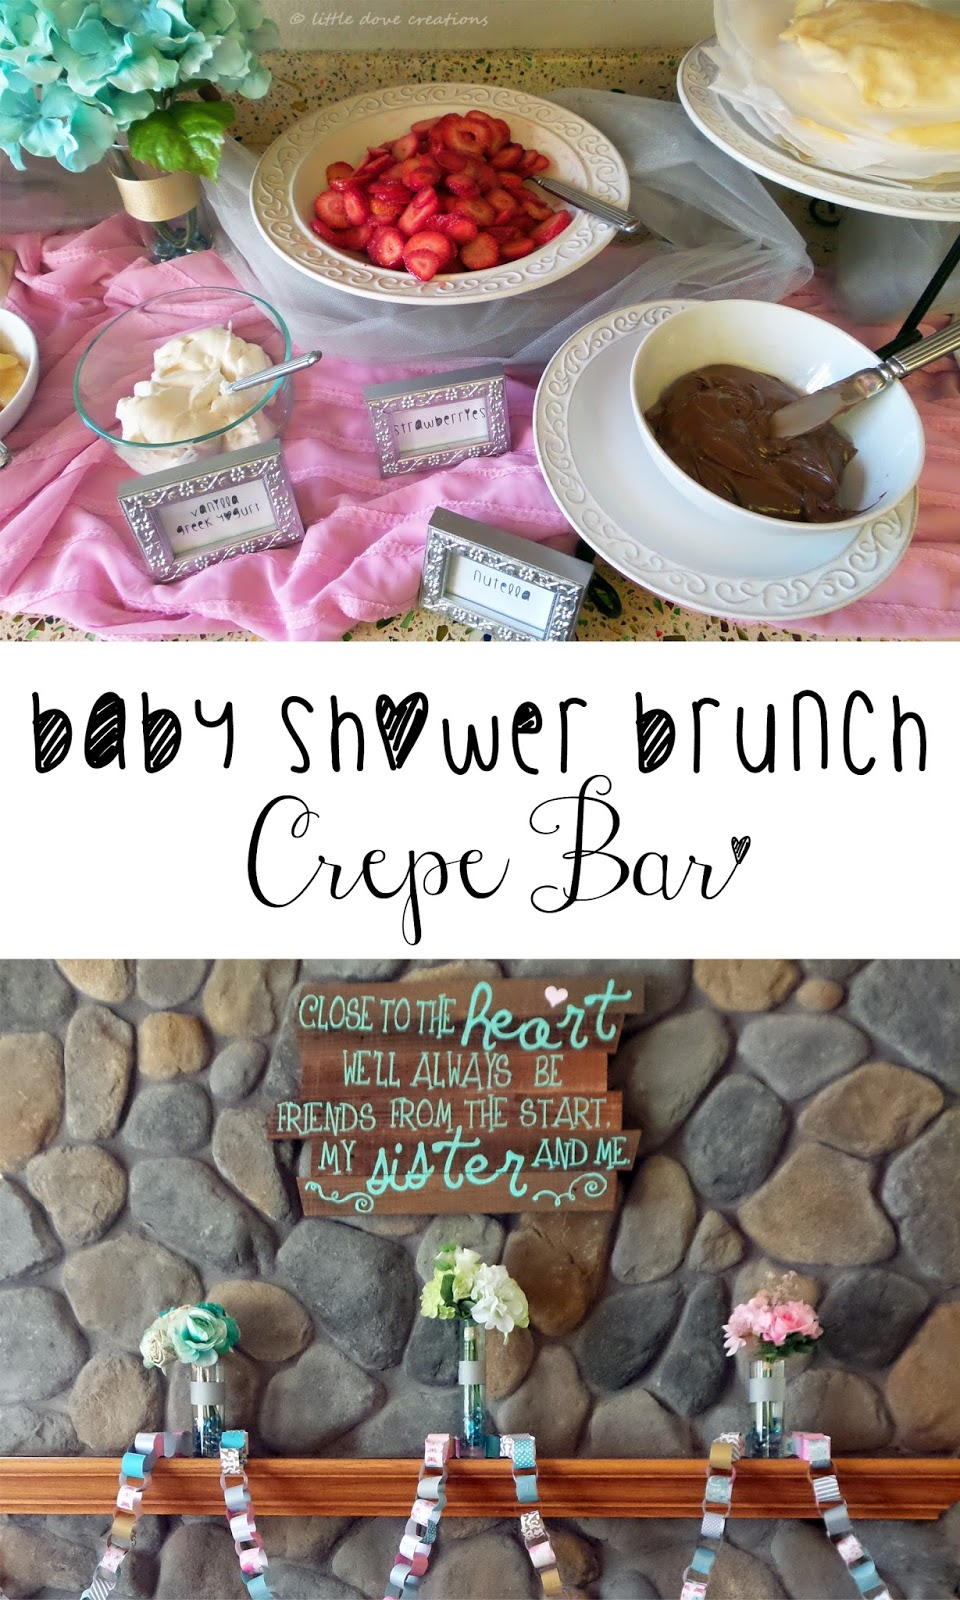 Baby Shower Brunch Crepe Bar